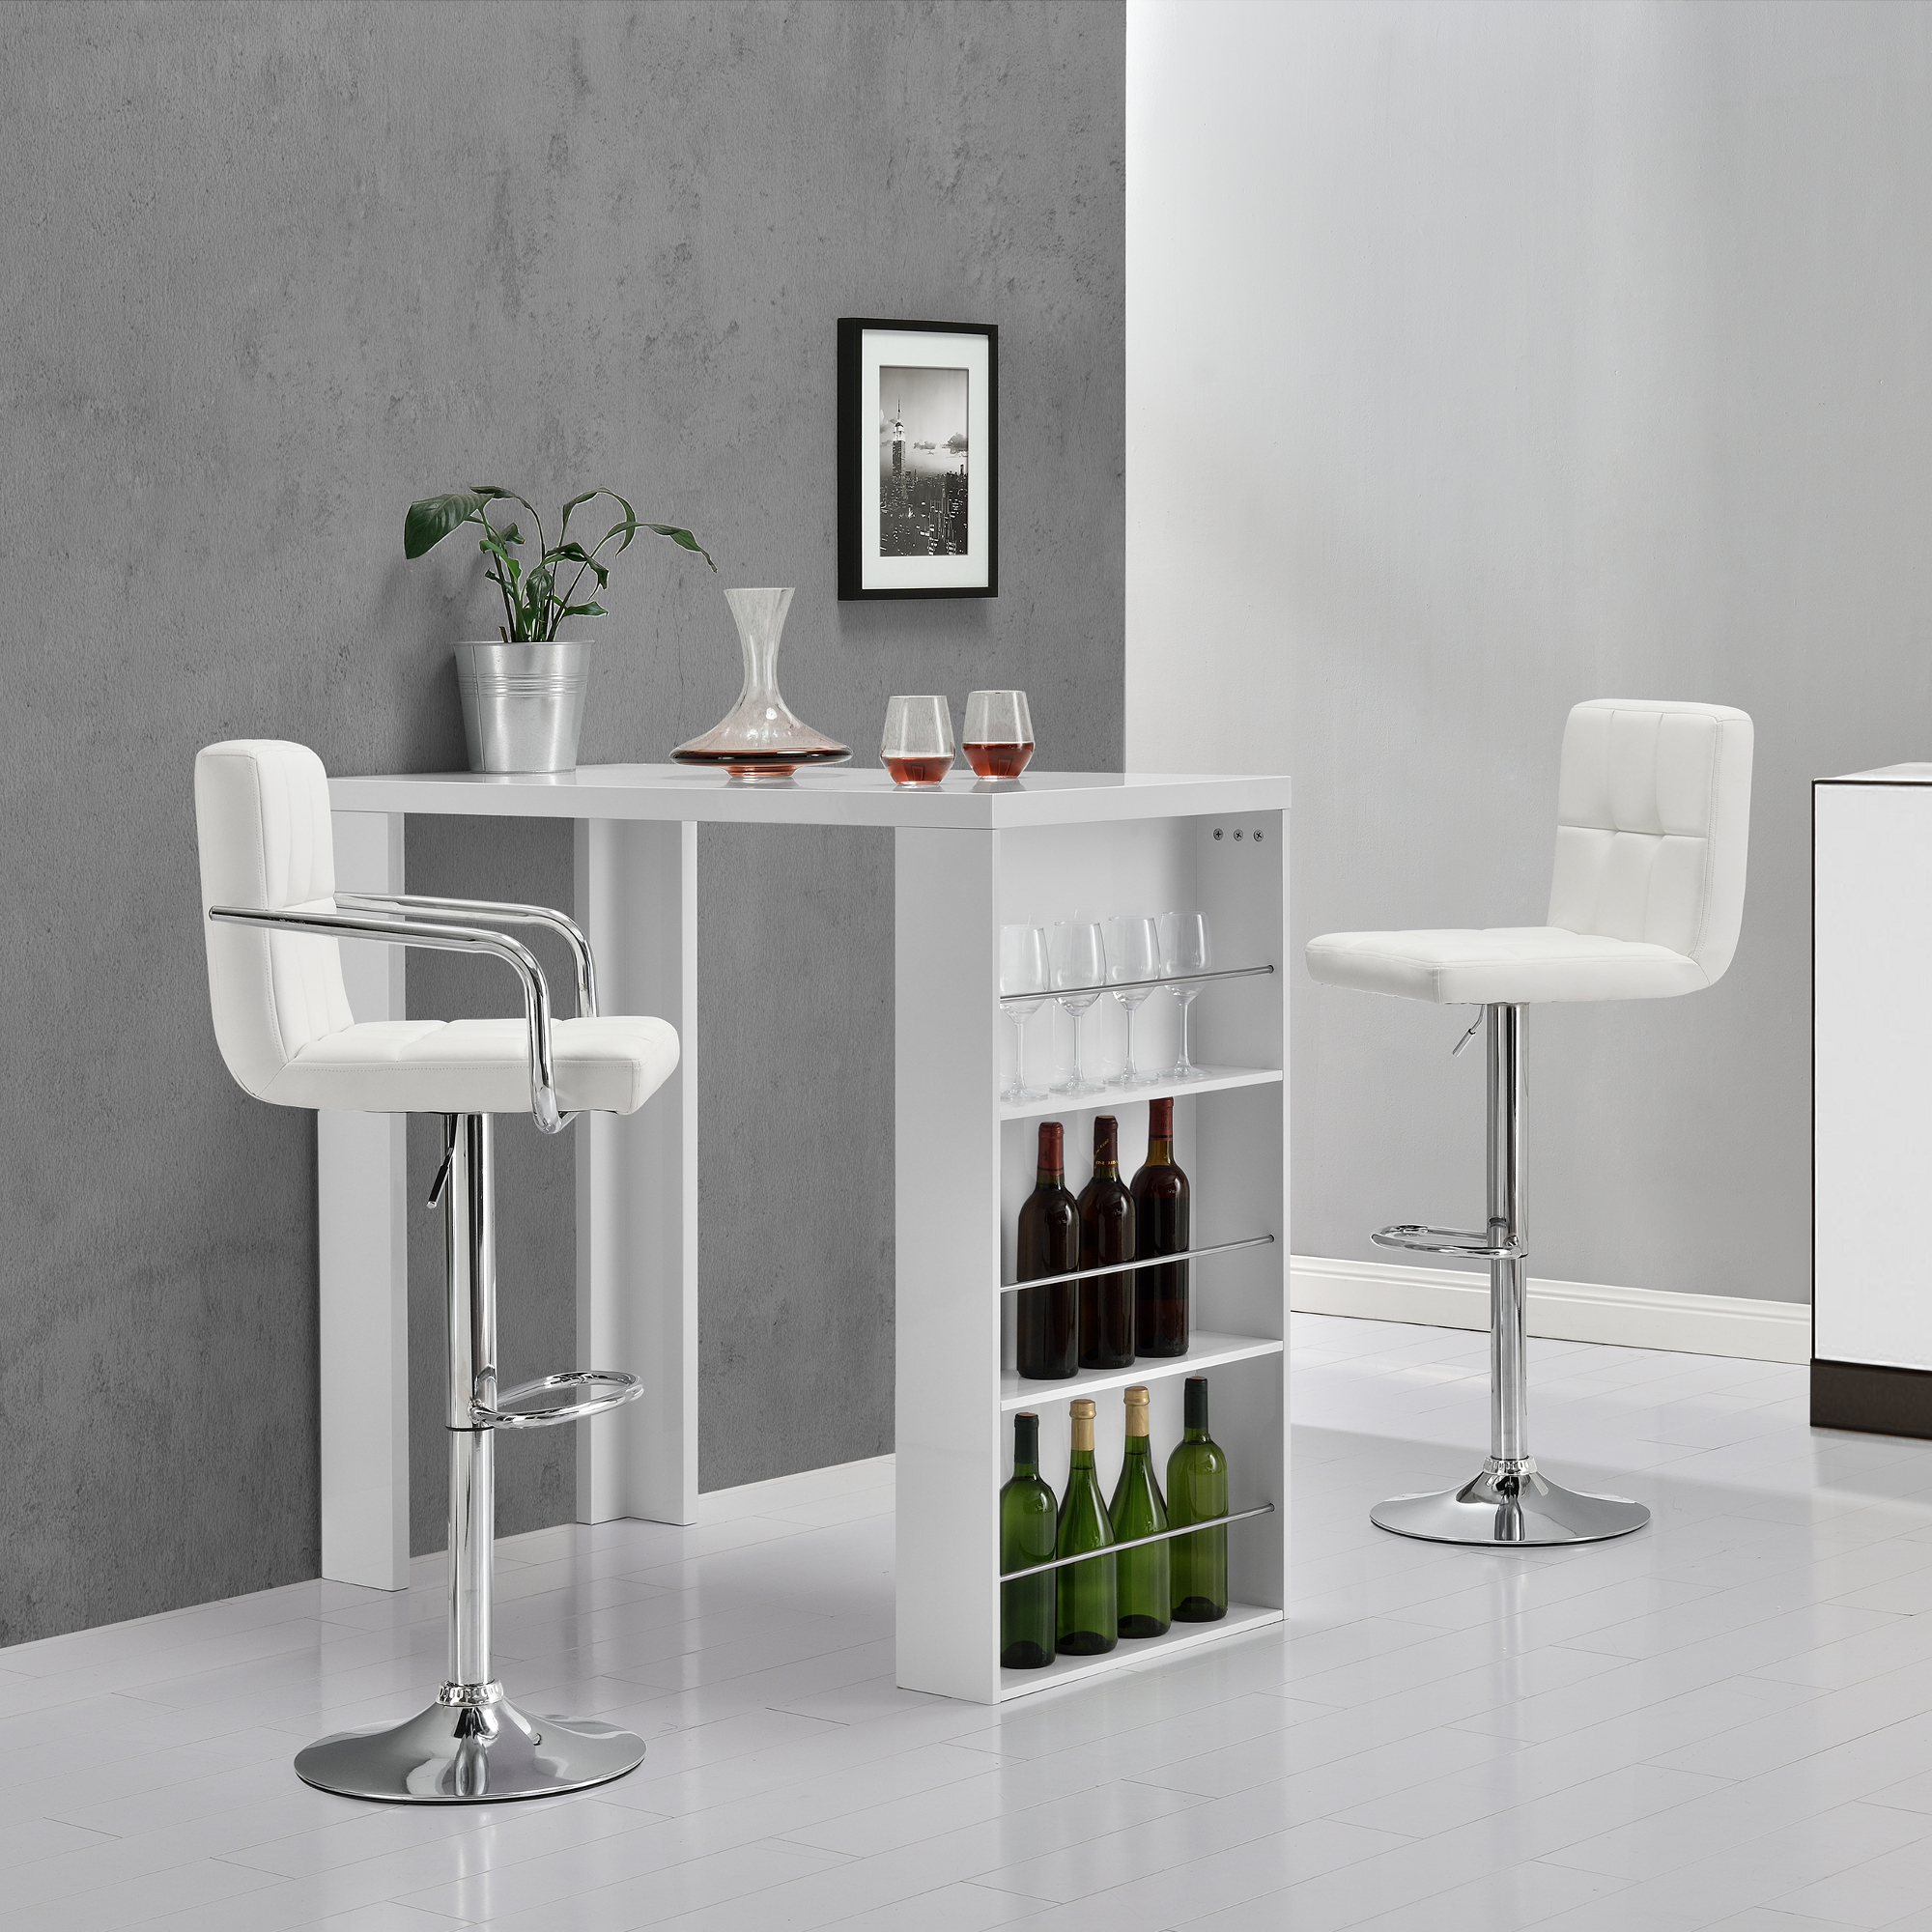 Barhocker 2er set rund tresenhocker barstuhl bar - Cocina para bar ...